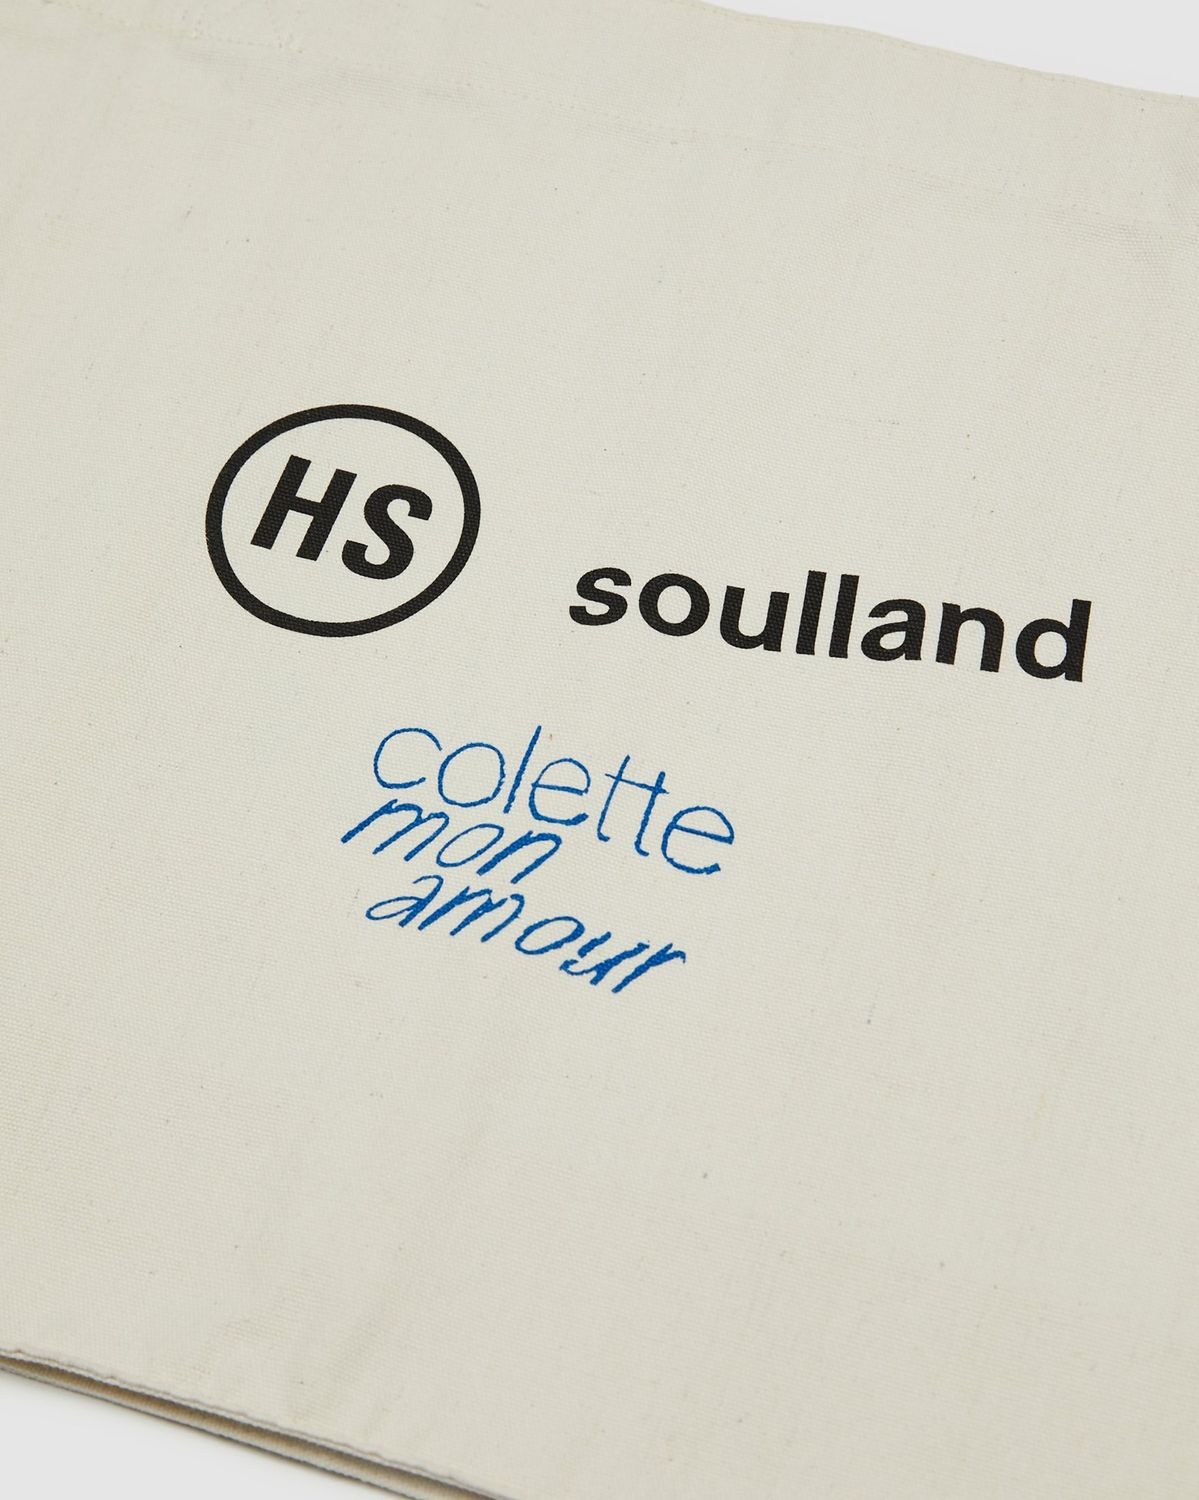 Colette Mon Amour x Soulland -  Snoopy Comics White Totebag - Image 3